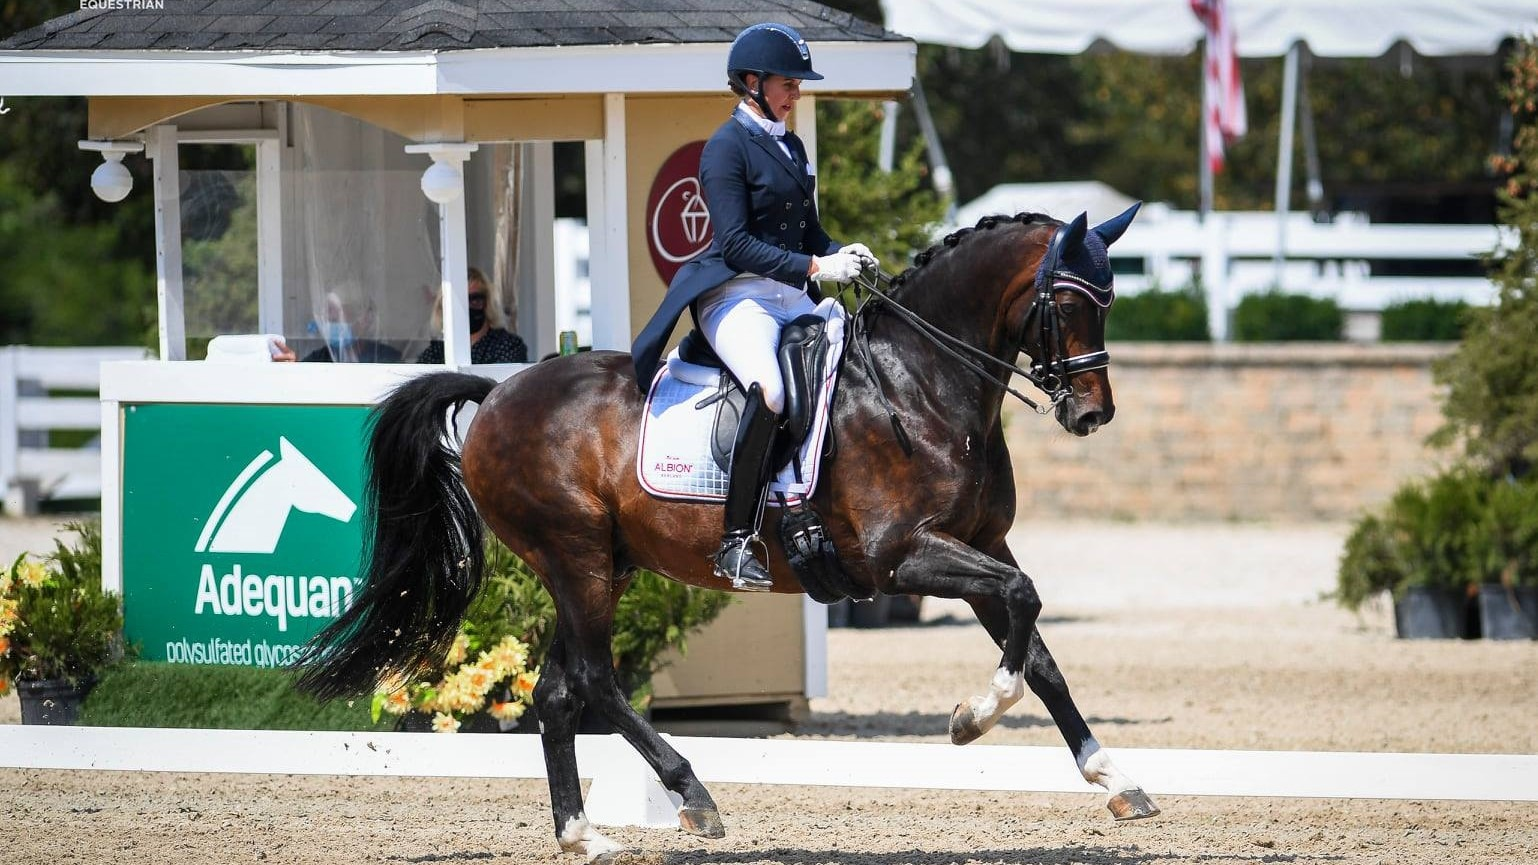 US Dressage Festival of Champions 2021 - YH/DH Arena